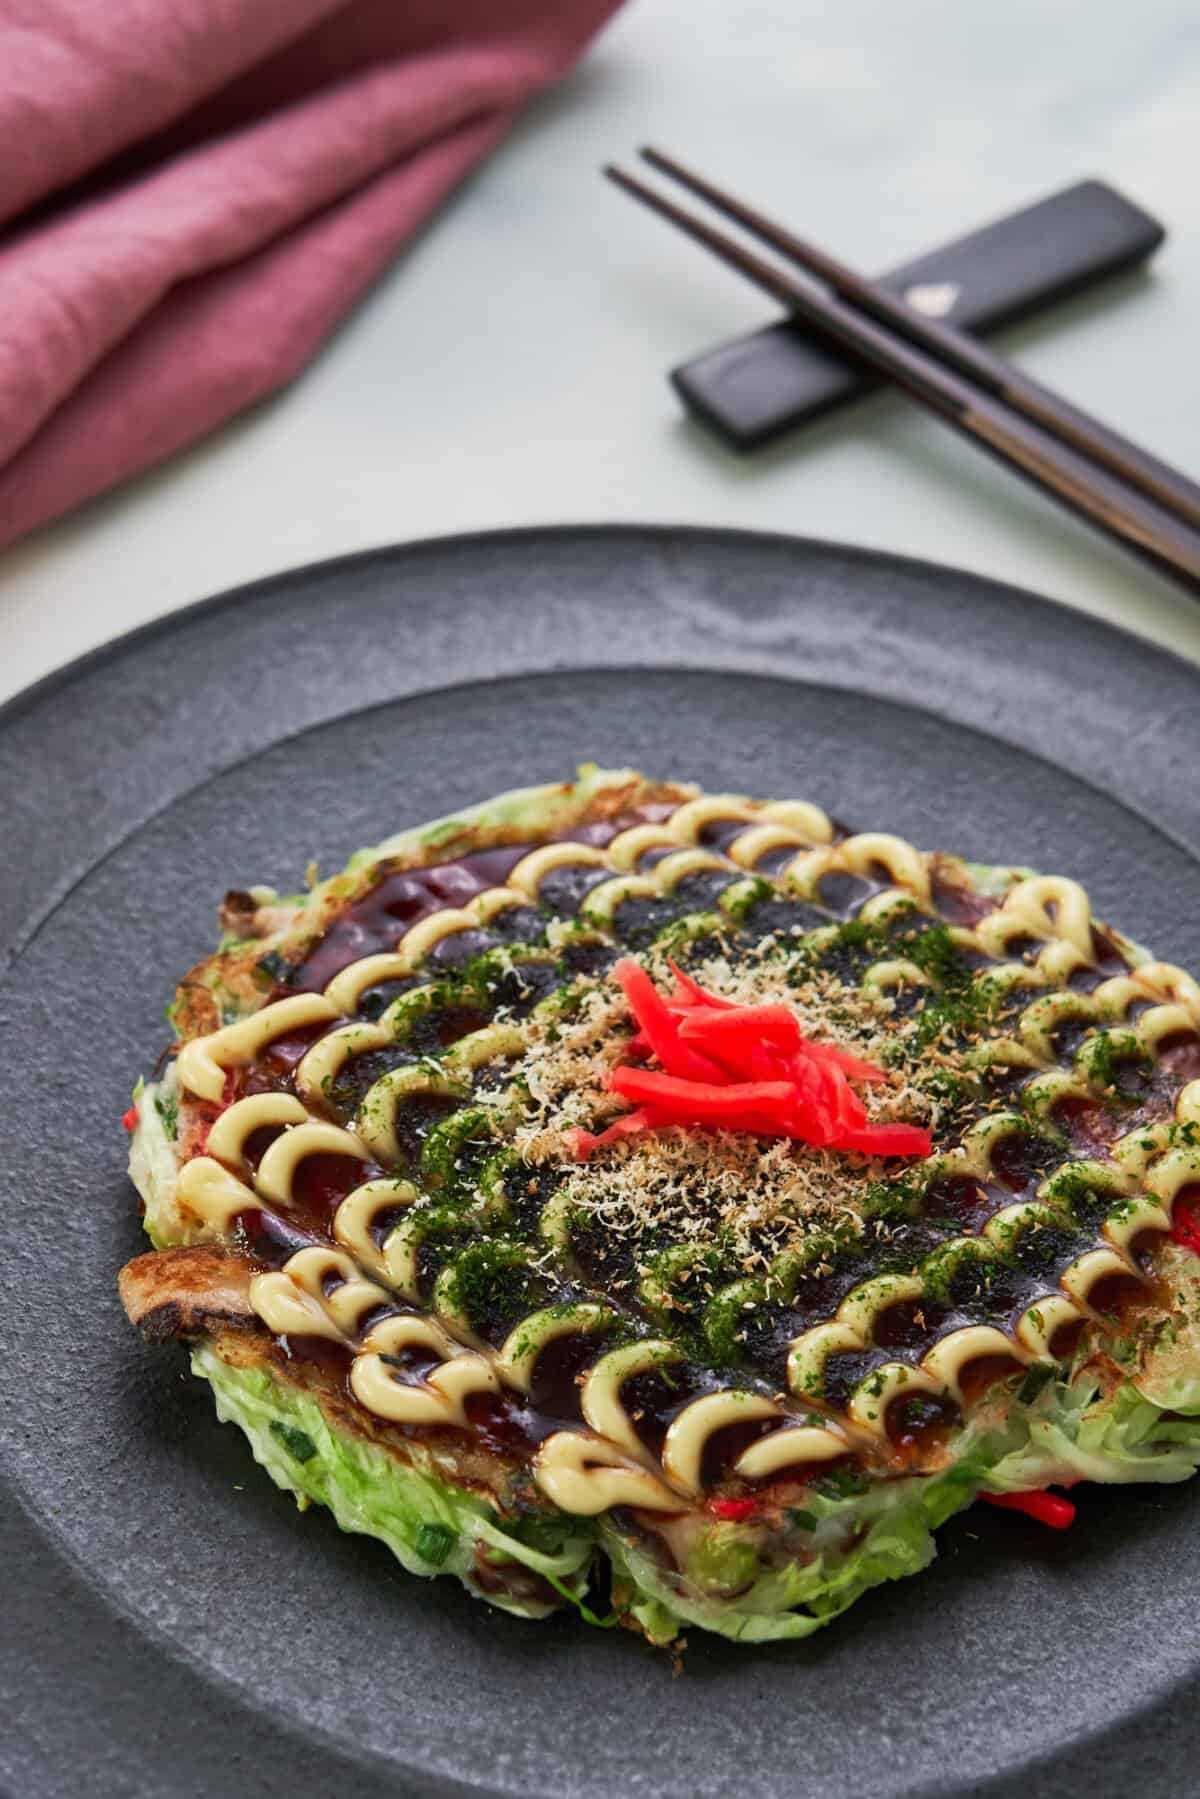 Okonomiyaki is a vegan-friendly Japanese cabbage pancake that can be loaded up and topped with all of your favorite ingredients!